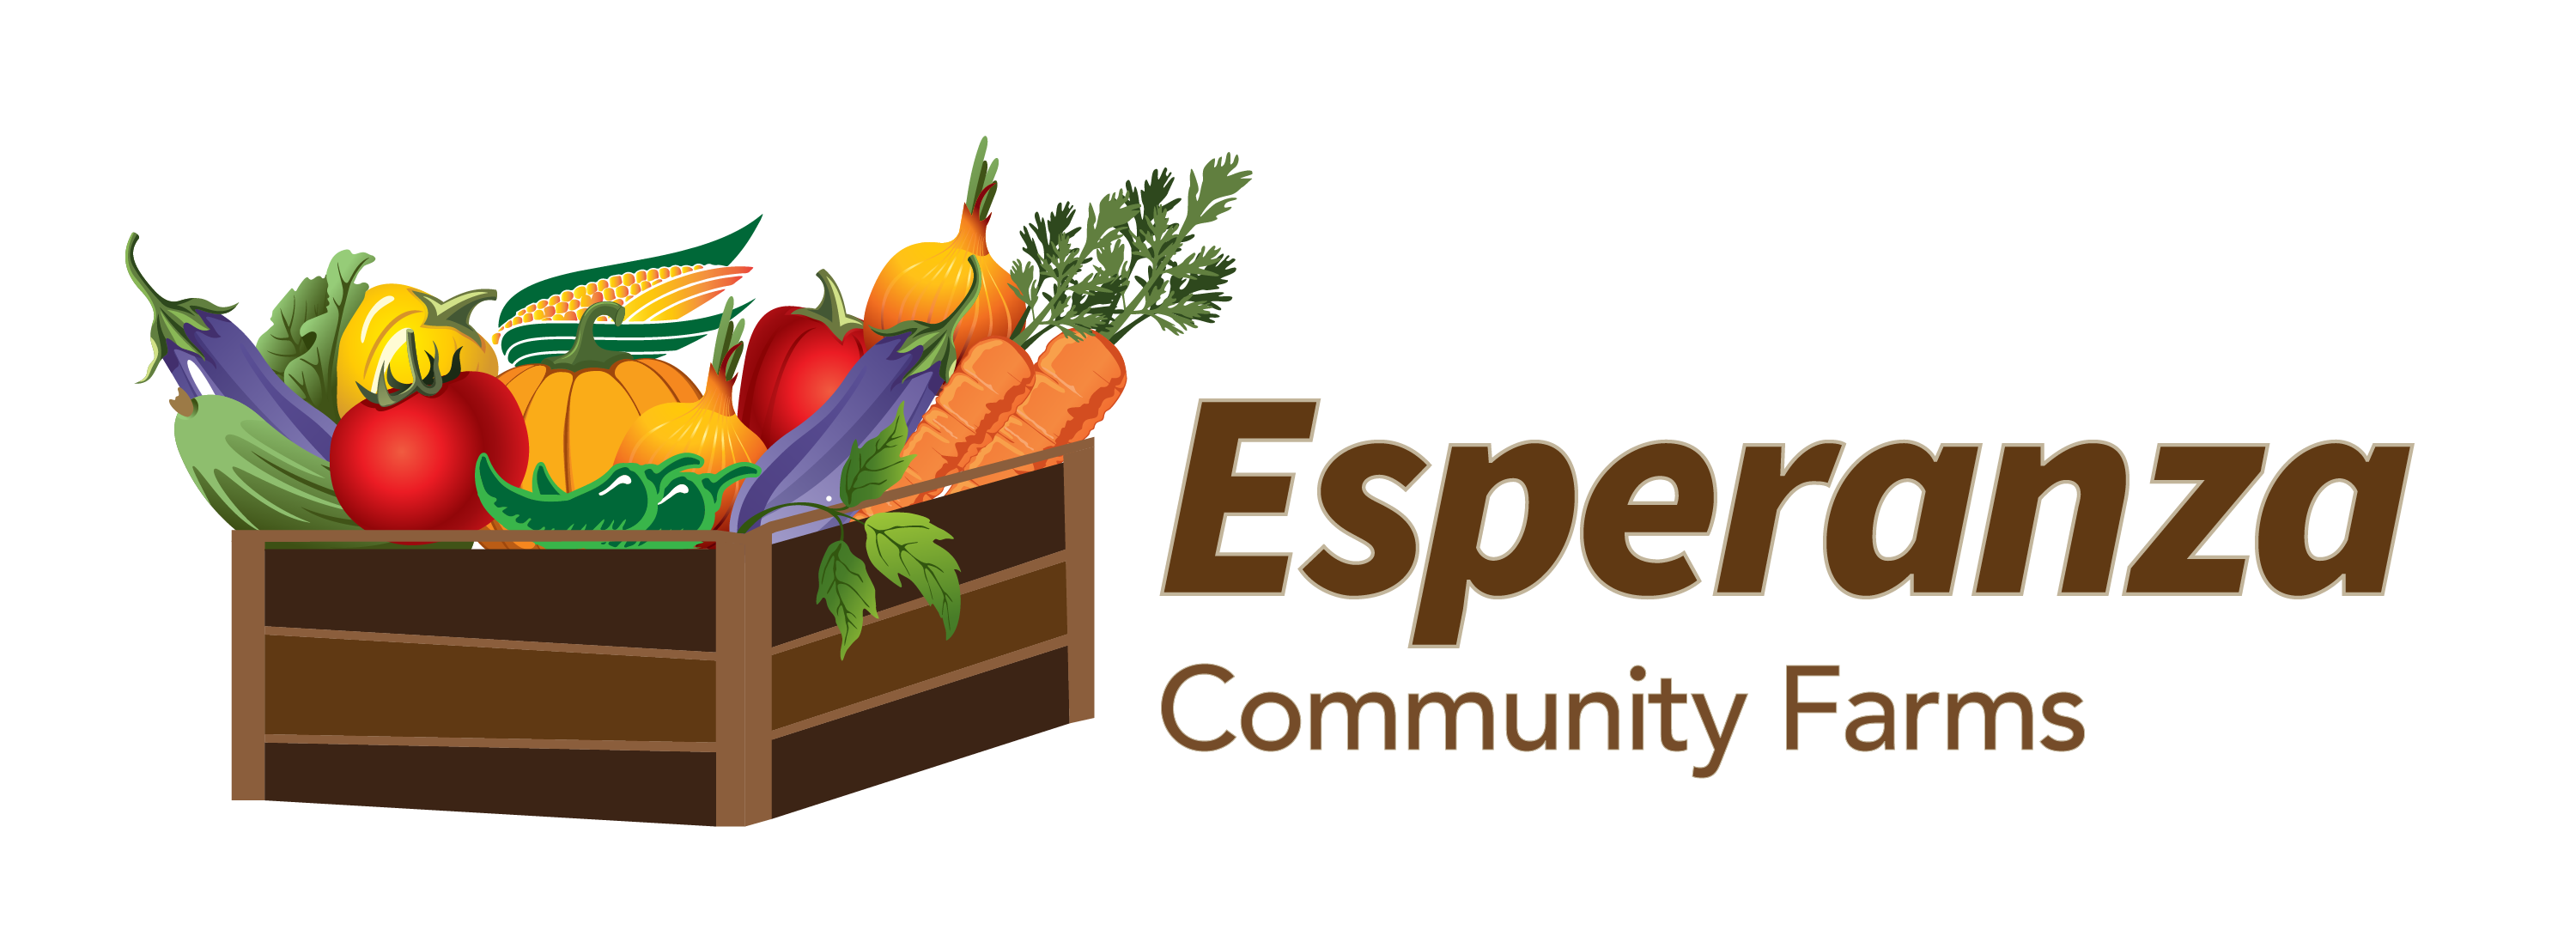 Esperanza Community Farms